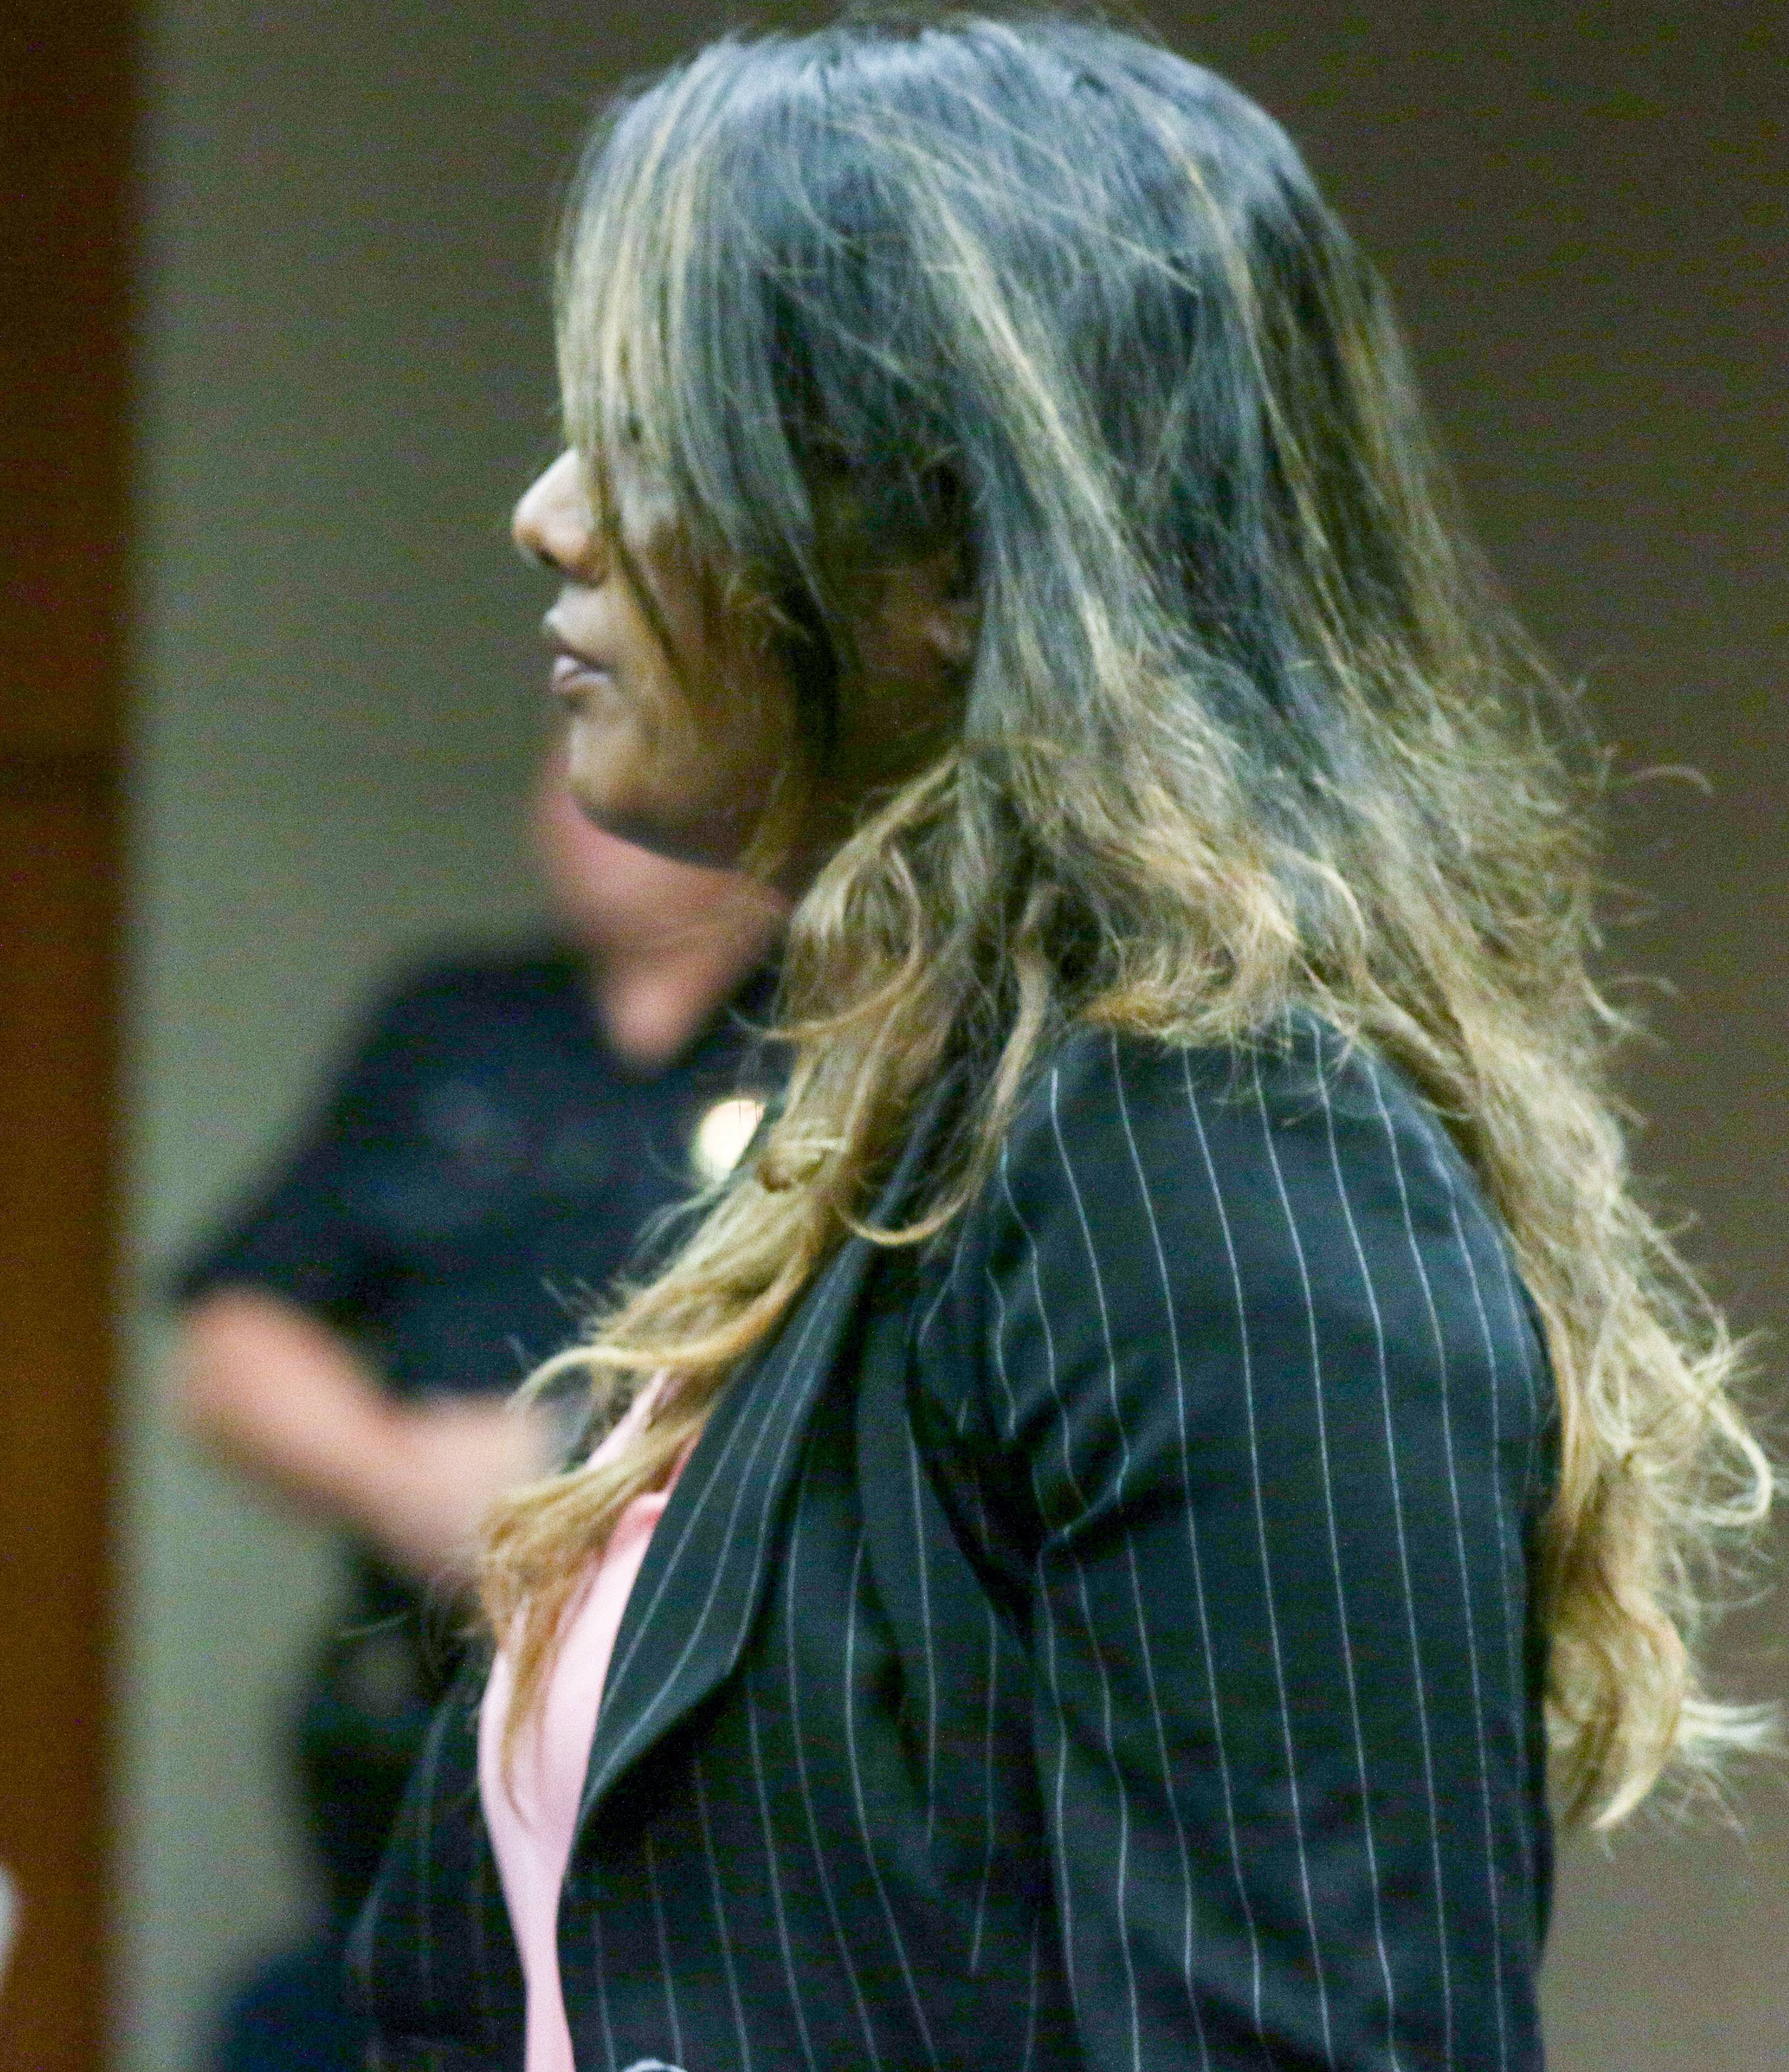 Tina Jones, 31, formerly of Des Plaines, pleaded not guilty Thursday in DuPage County court to four counts of solicitation of murder for hire, two counts of solicitation of murder and the one new count of attempted first-degree murder.